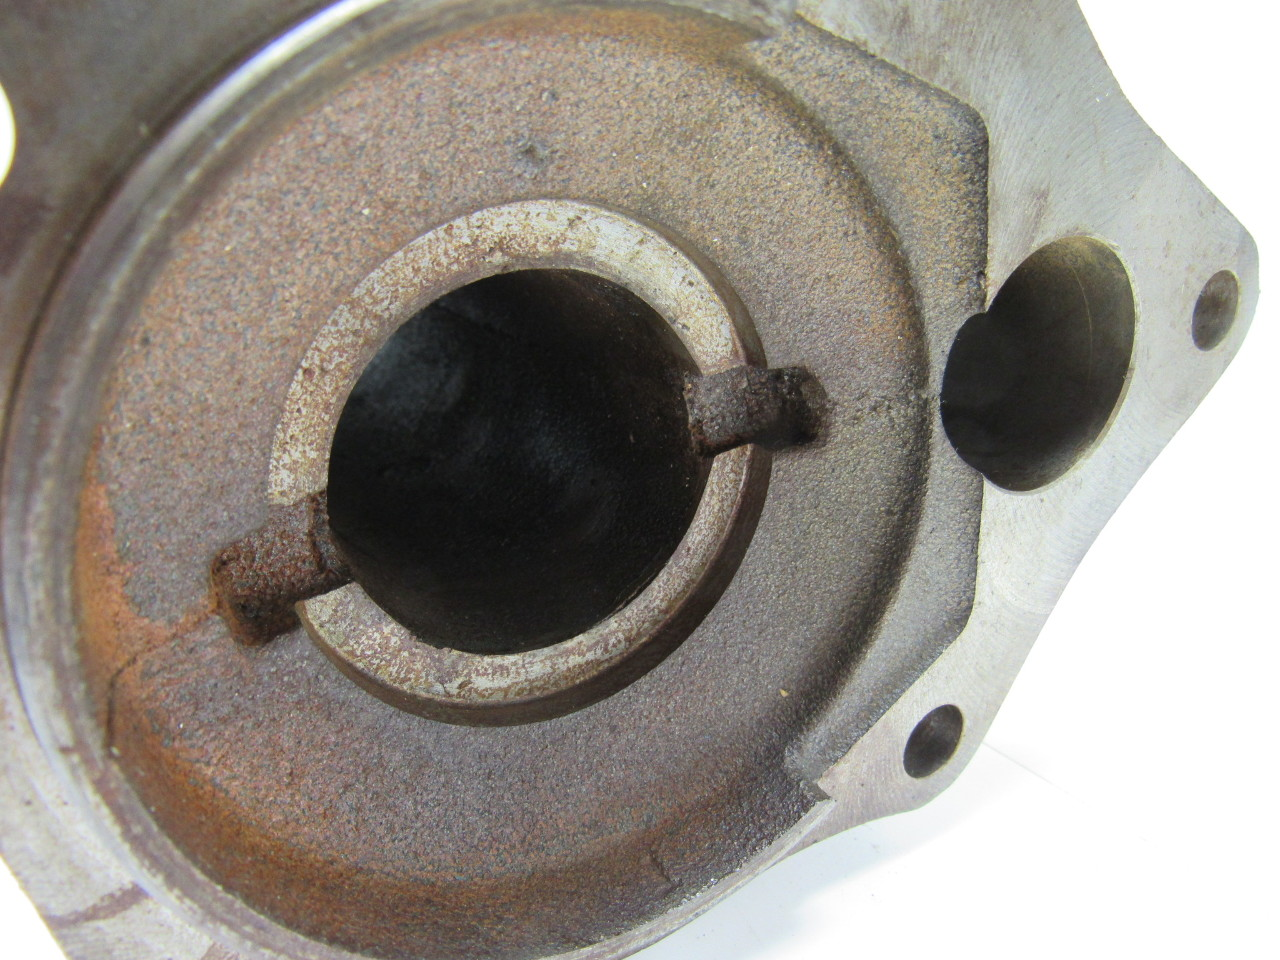 Gm 4x4 Front Axle Housing : Gm chevy quot ifs front drive axle inner